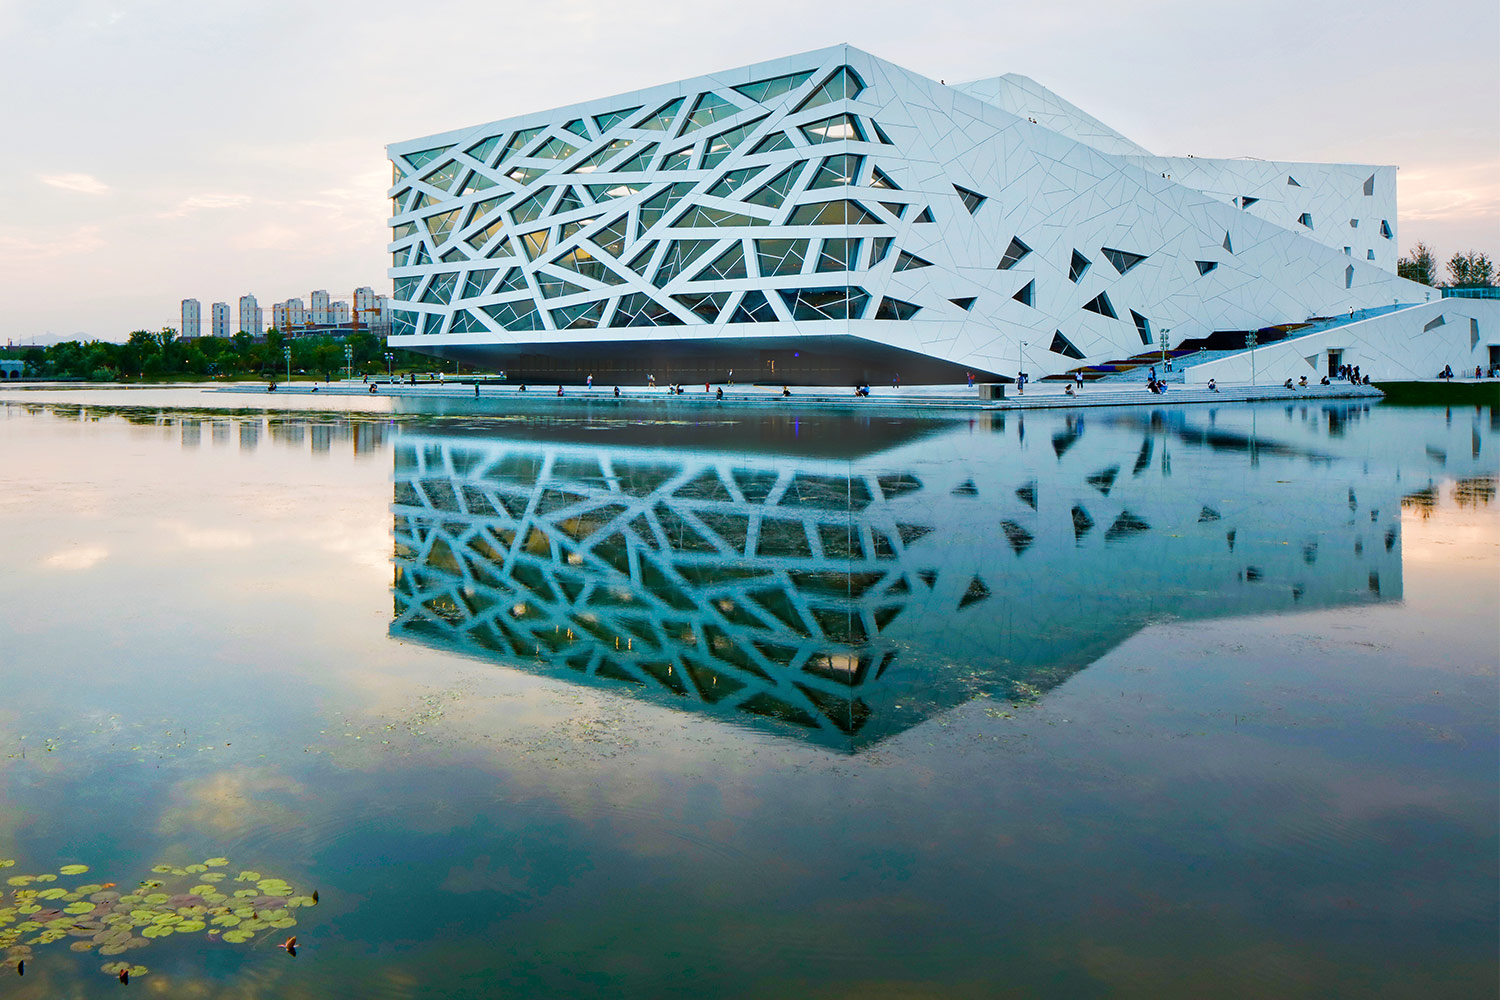 Yuhang Cultural Arts Centre and its reflection at dusk in the lake